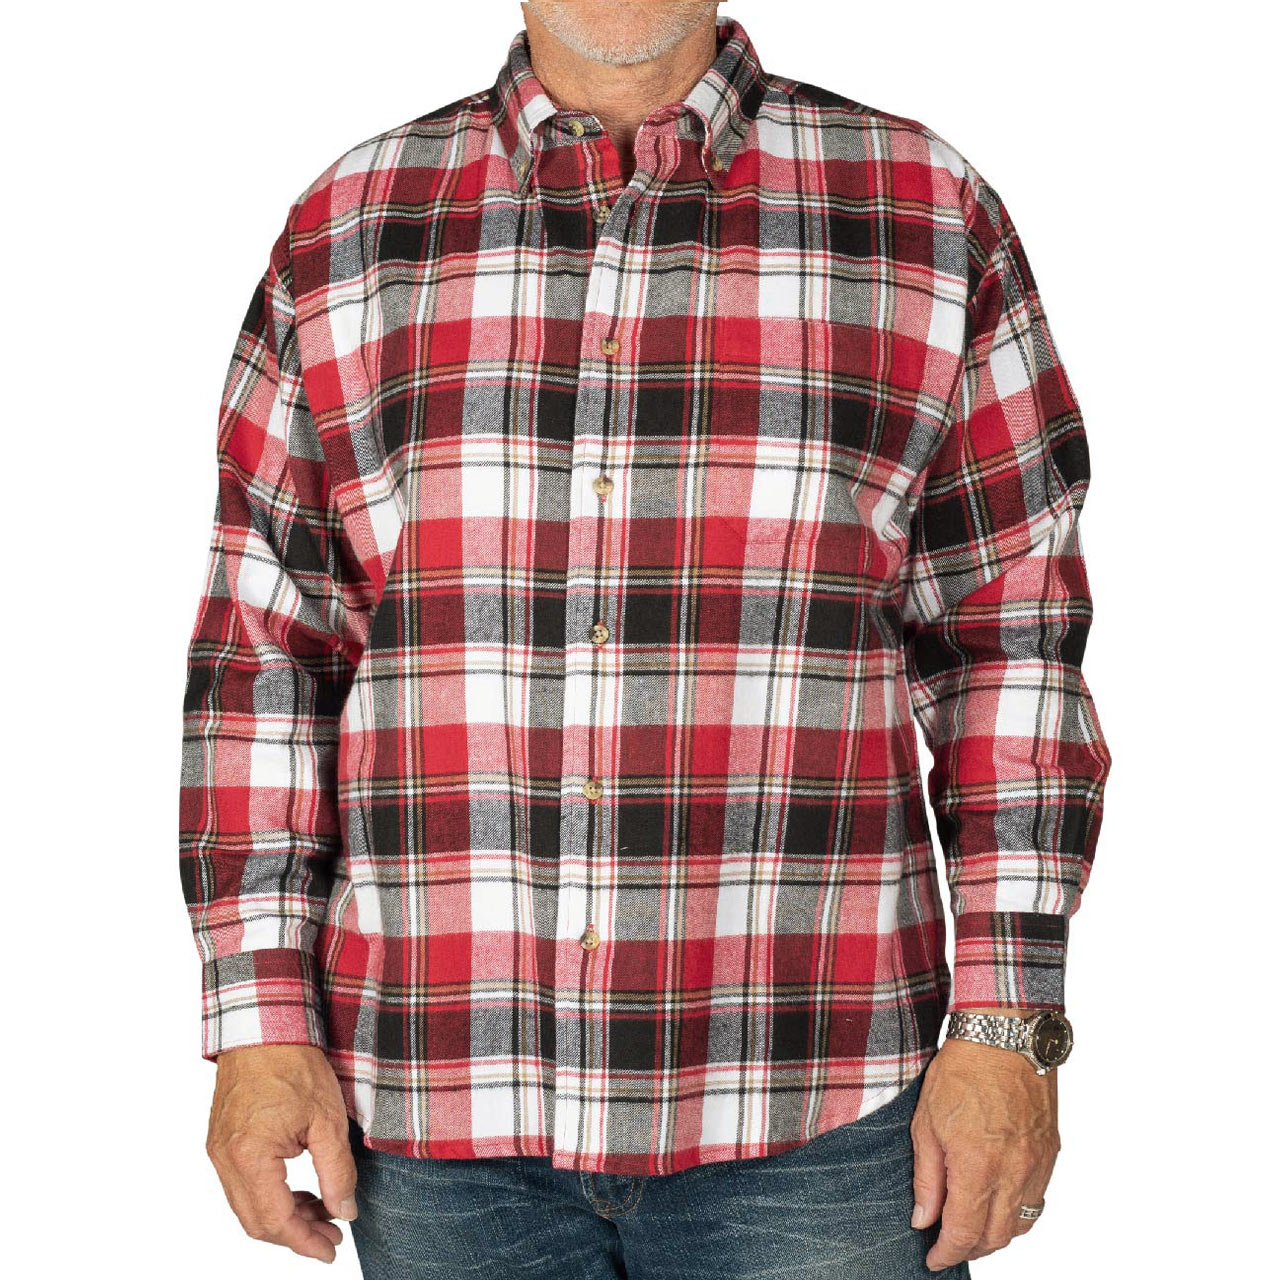 Men's Woodland Trail By Palmland Long Sleeve 100% Cotton Woven Plaid Flannel Shirt #5900-308 Red